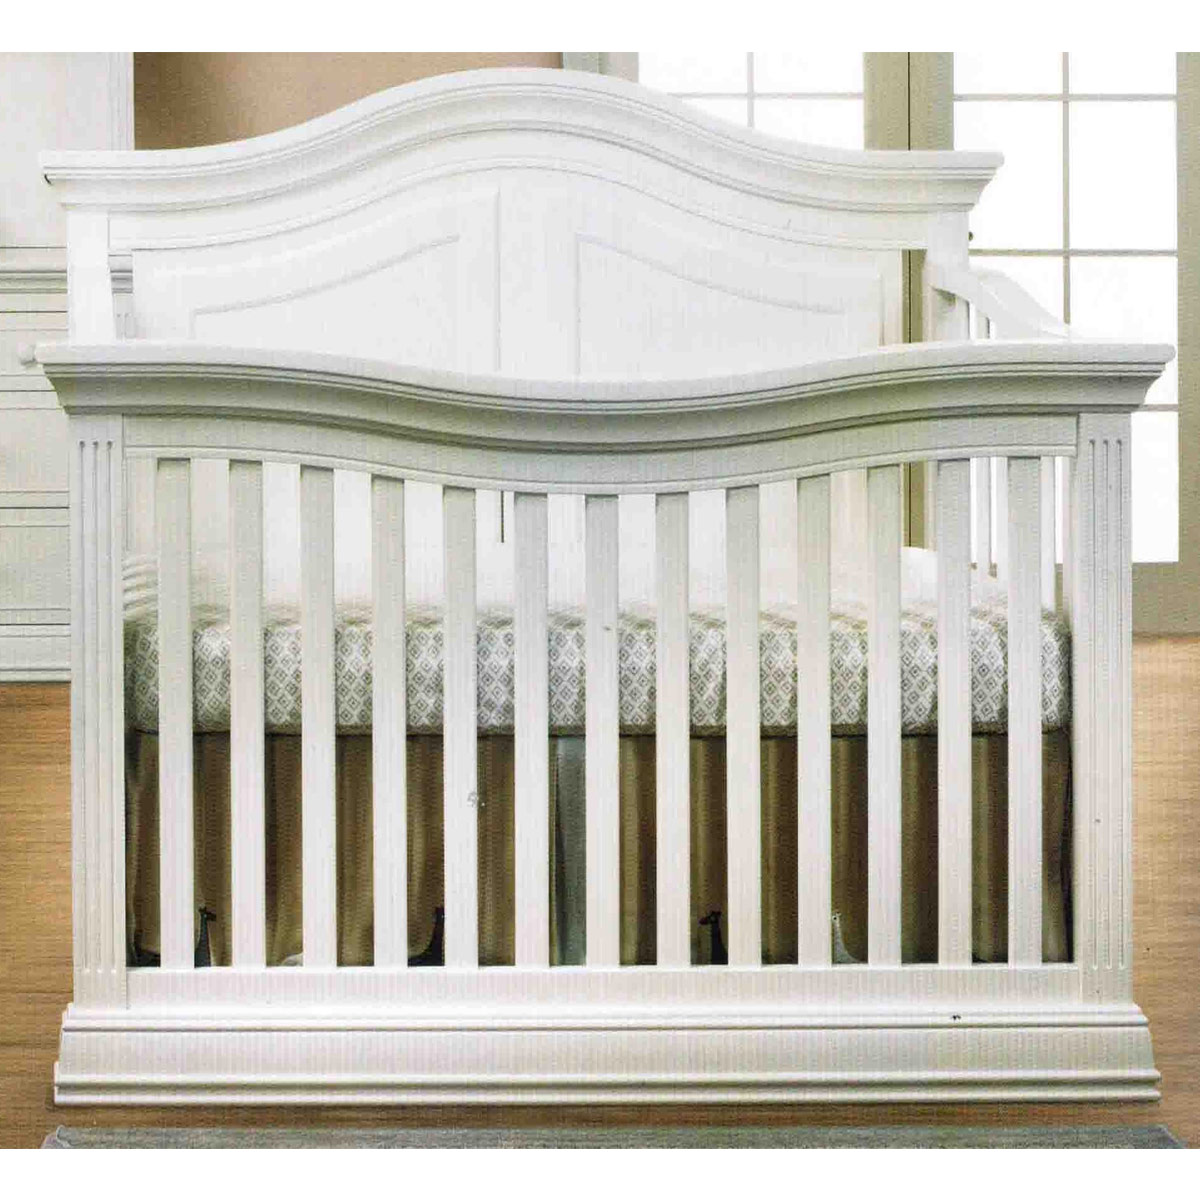 - Sorelle Providence 4-in-1 Convertible Crib In White FREE SHIPPING